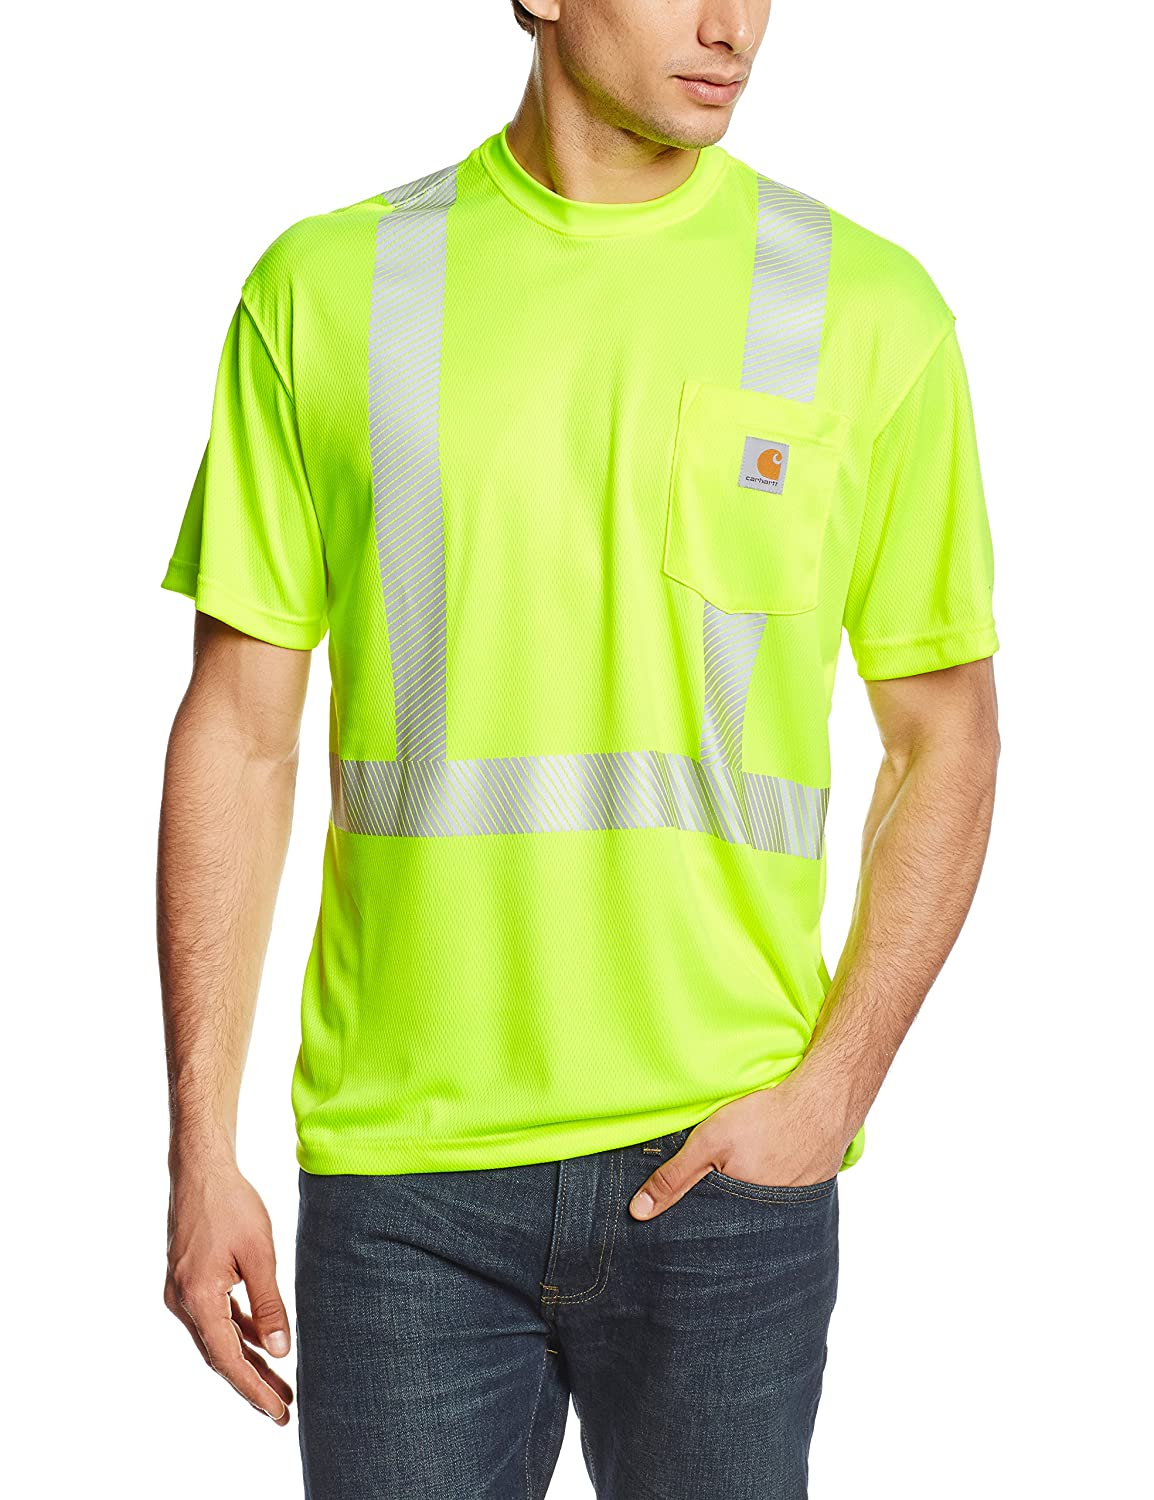 Workplace Safety Supplies Just 2017 New Summer Fashion Breathable Fluorescent Mesh Reflective T-shirt Short Sleeve Traffic Safety Warning Overalls